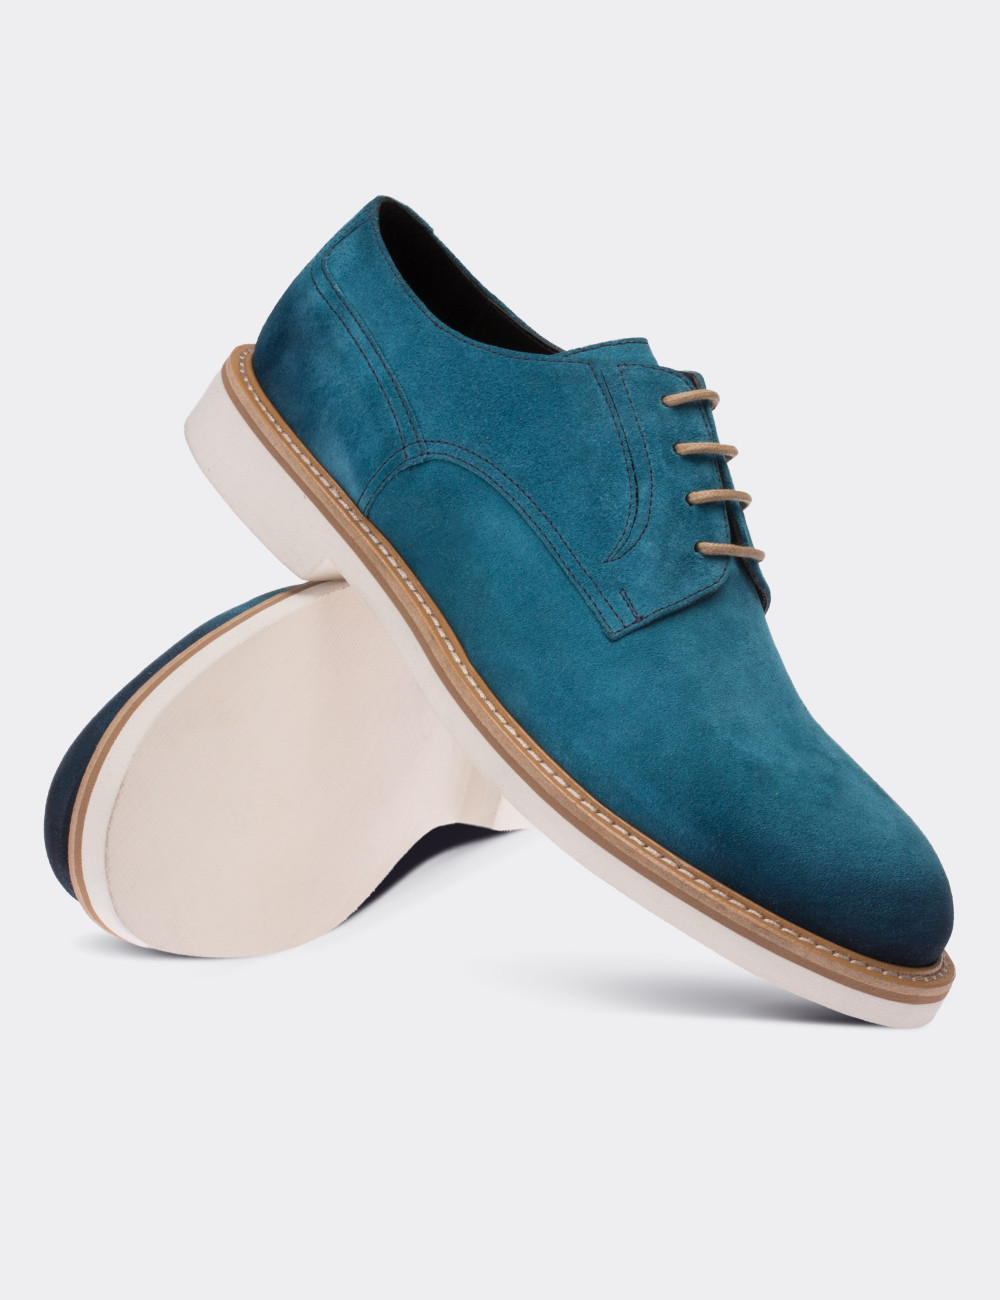 Blue Suede Calfskin Lace-up Shoes - Deery